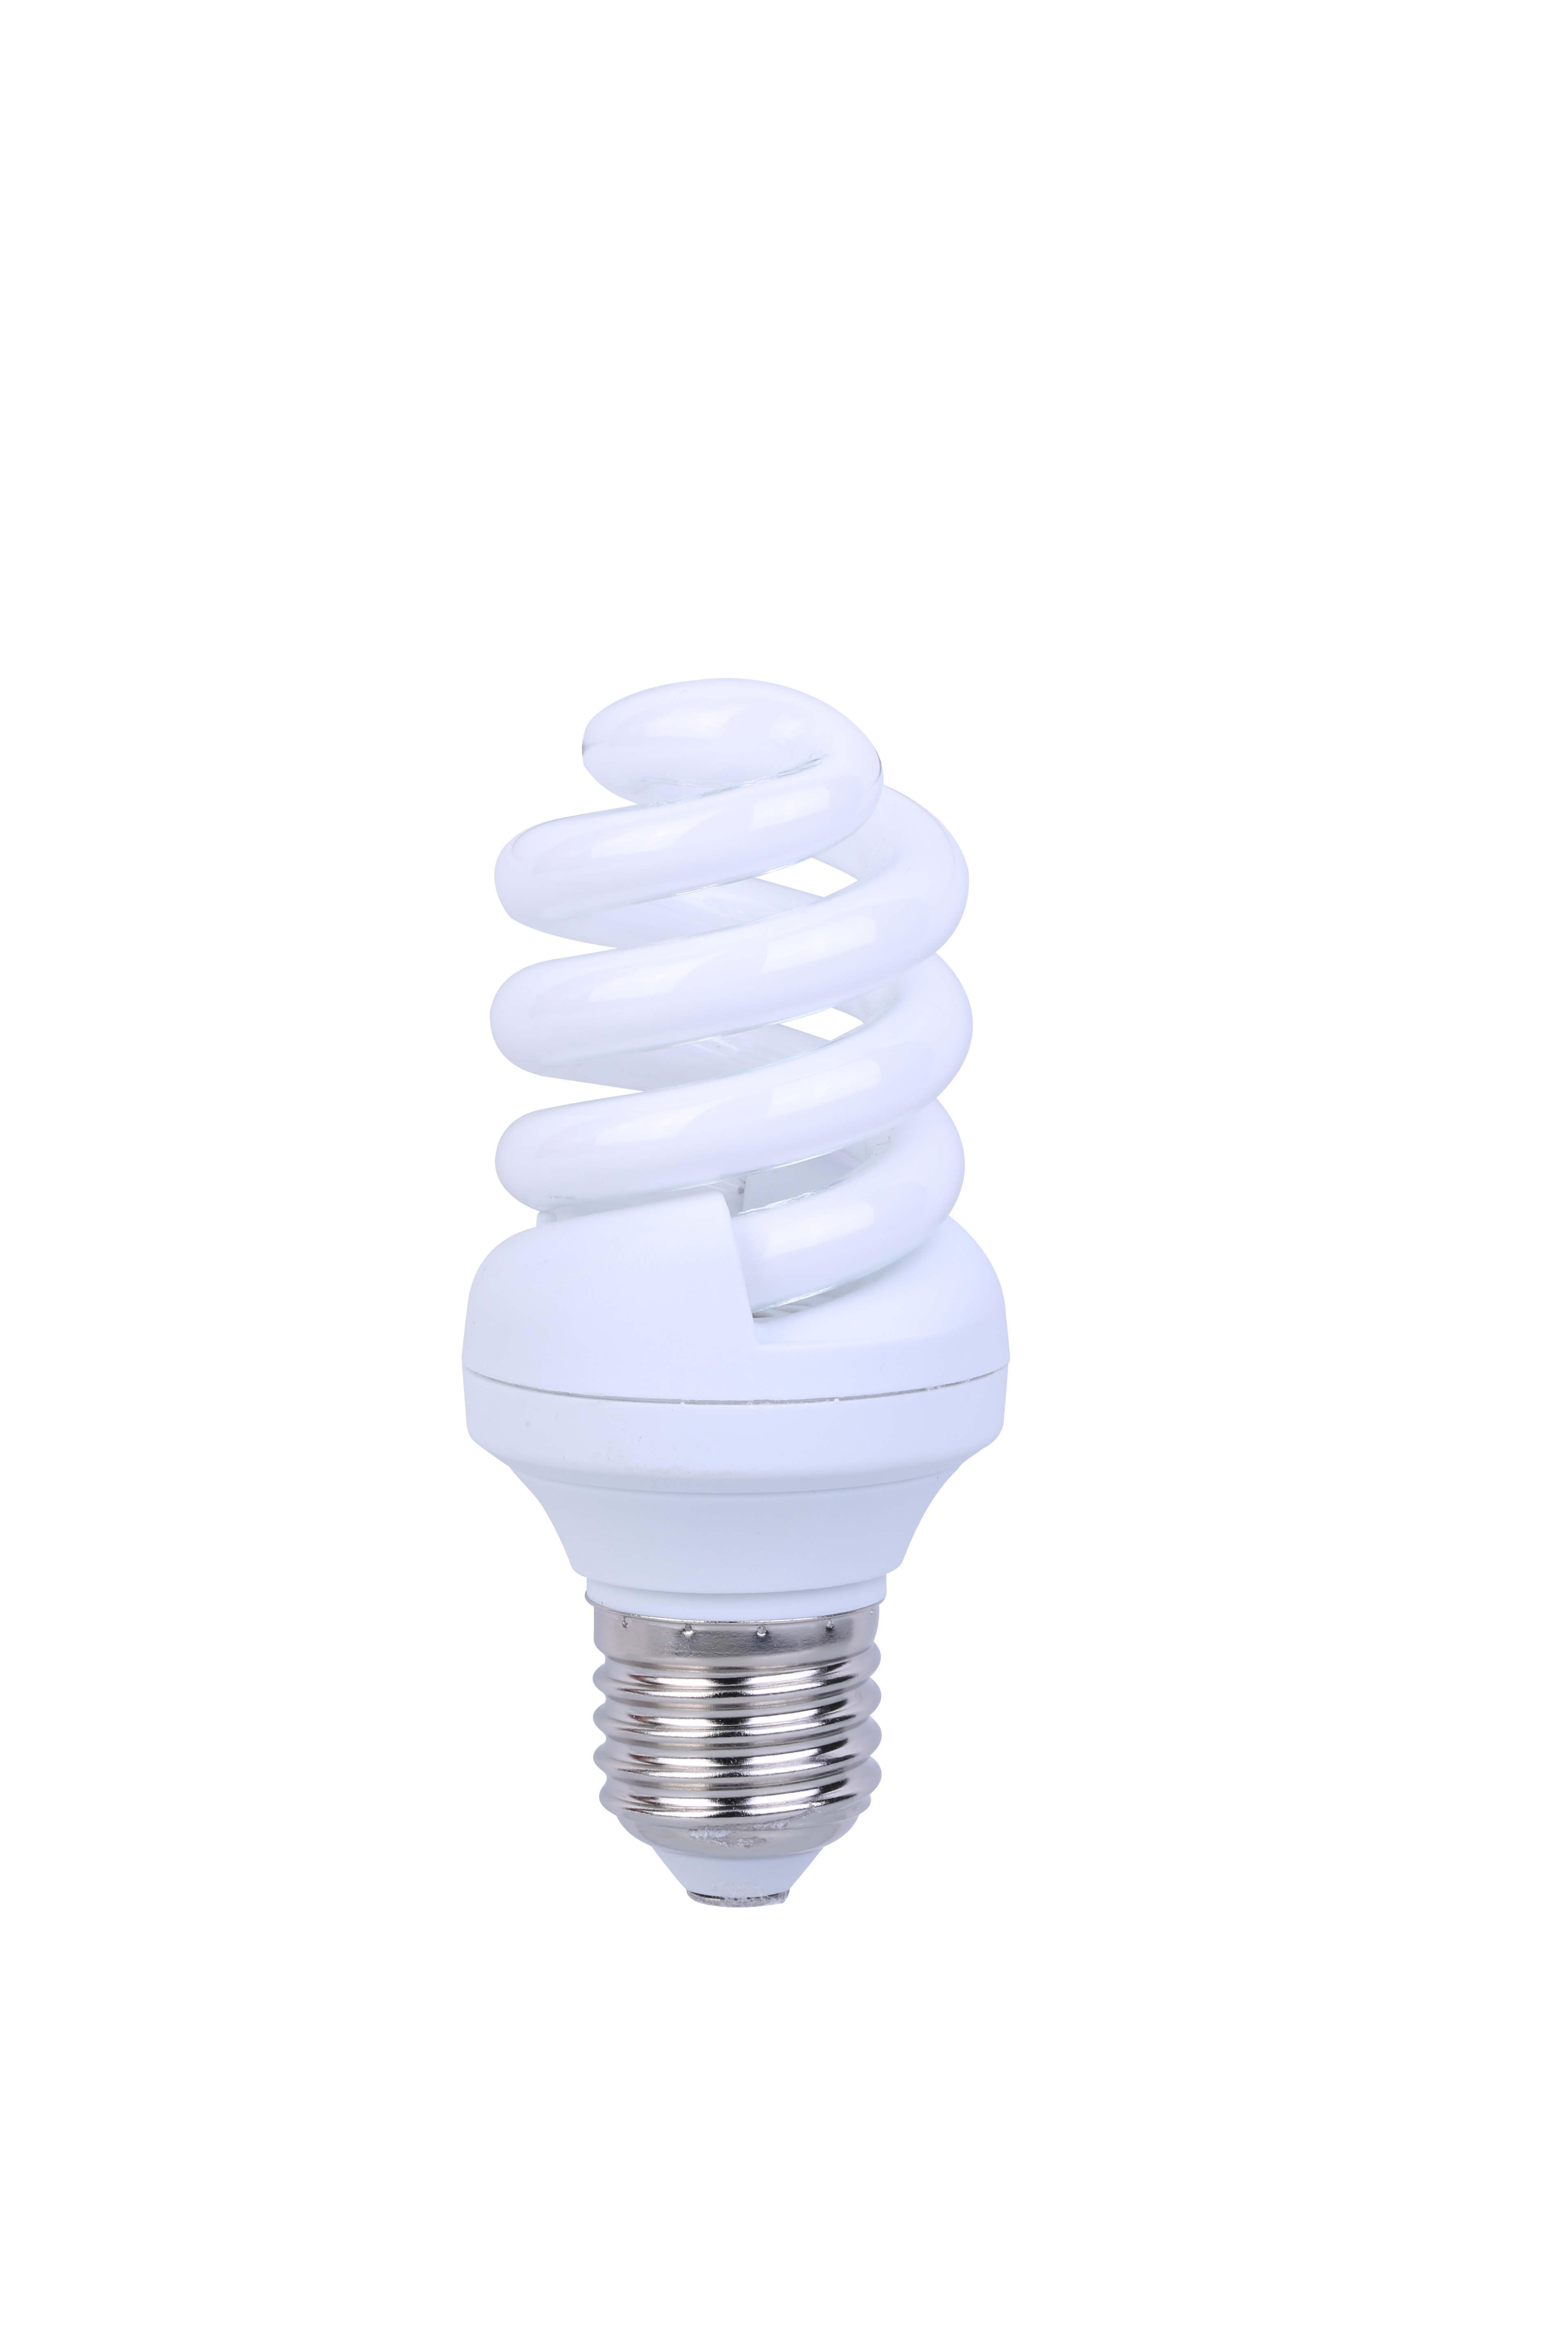 New modern 6000 - 8000 hours mini spiral t2 CFL light bulb